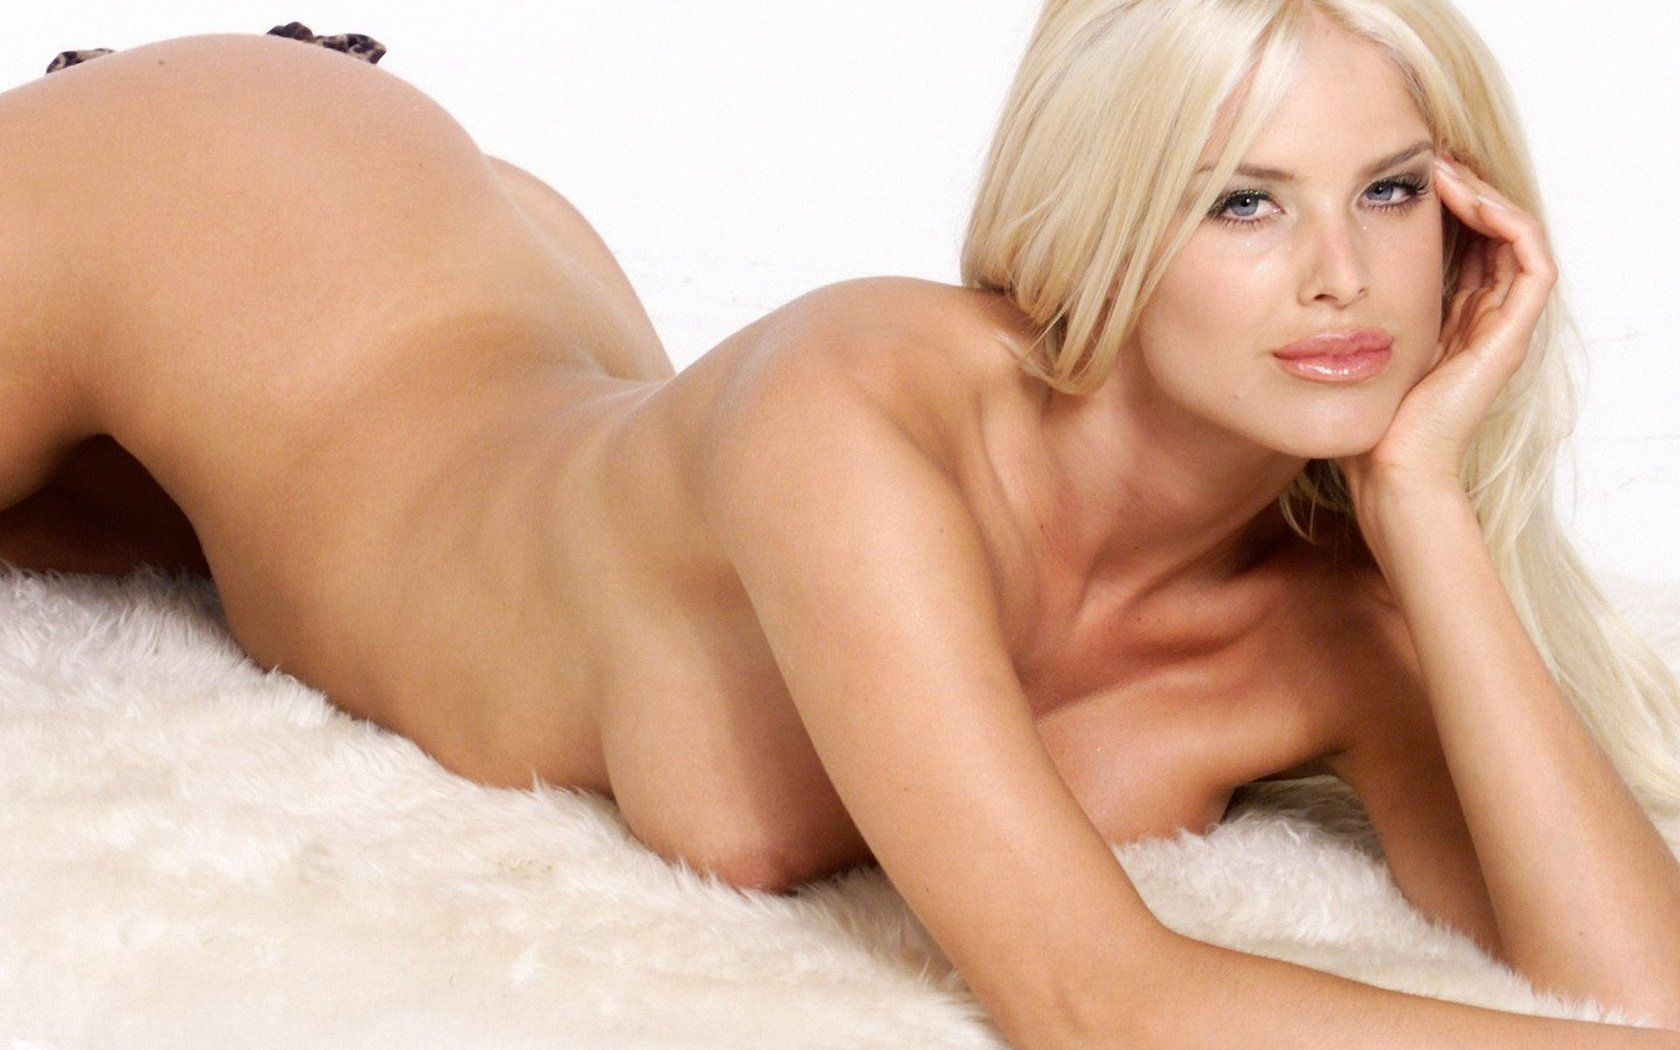 Victoria silvstedt porn photos — pic 6